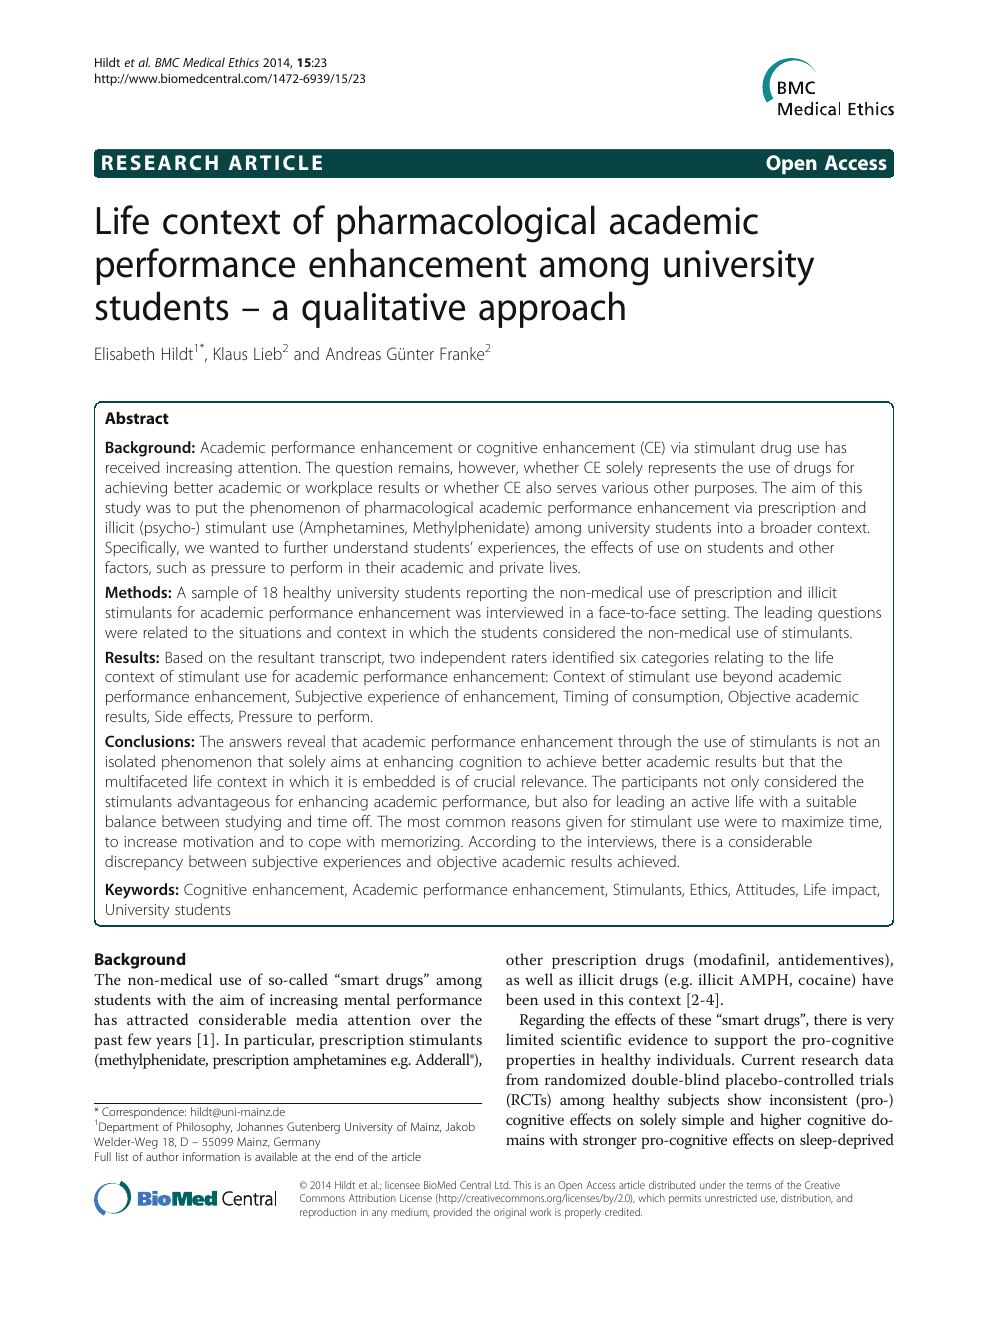 Life context of pharmacological academic performance